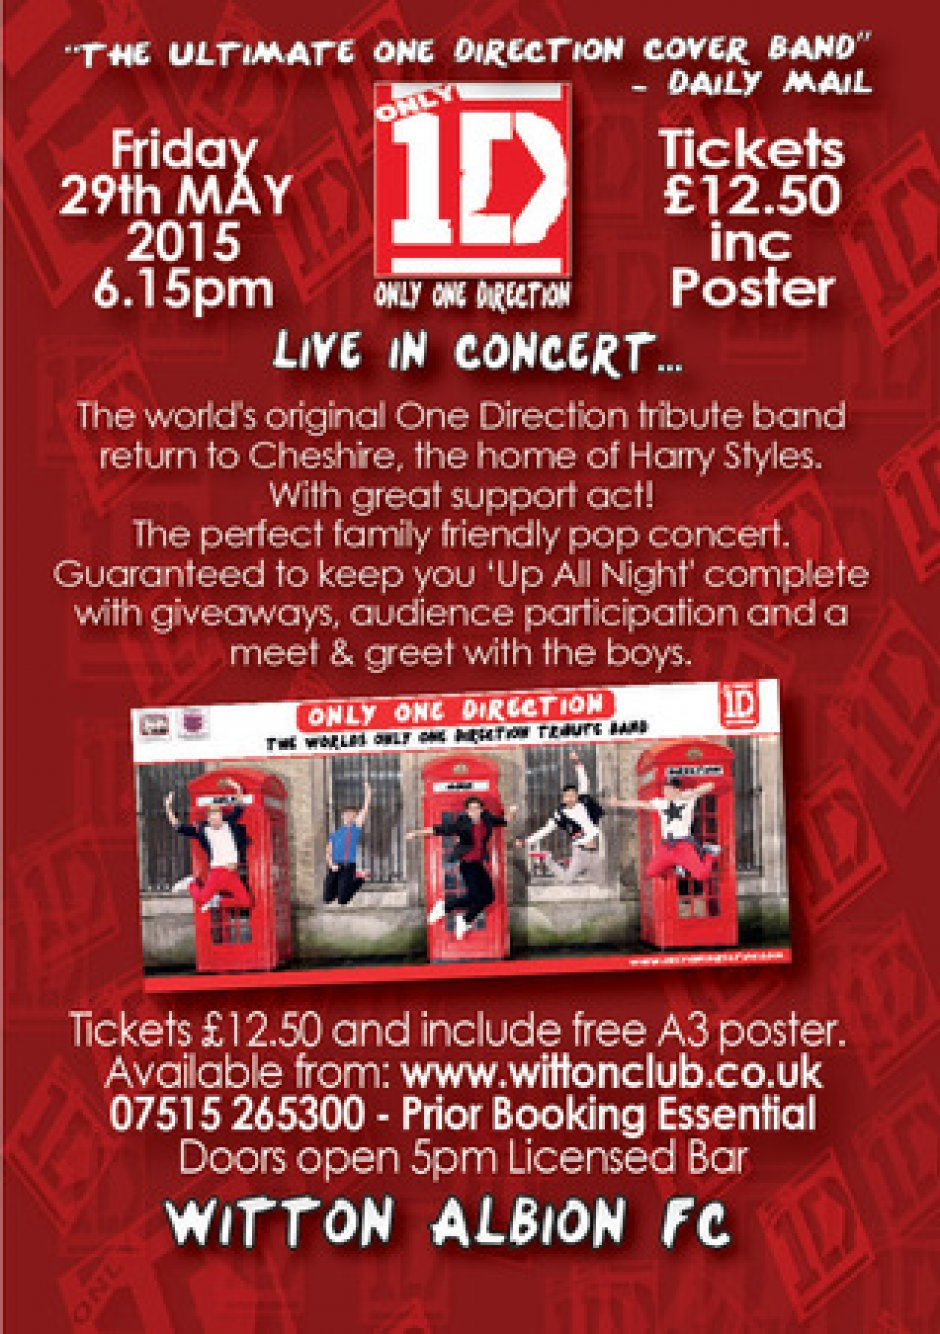 Only One Direction 1d Tribute Live In Concert Plus Support Act At